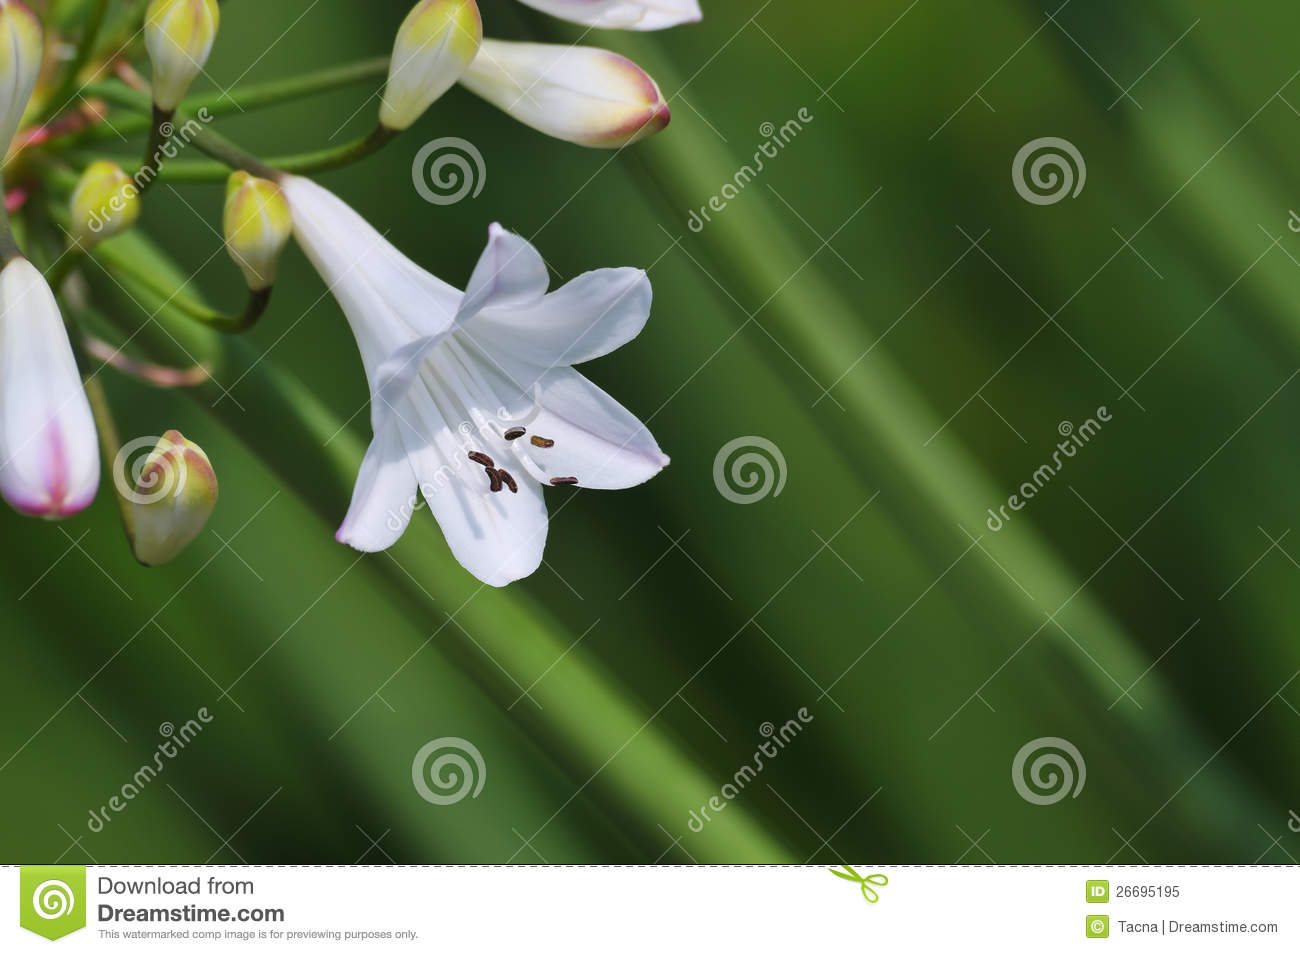 Small white lily on green stock image image of europe 26695195 download small white lily on green stock image image of europe 26695195 izmirmasajfo